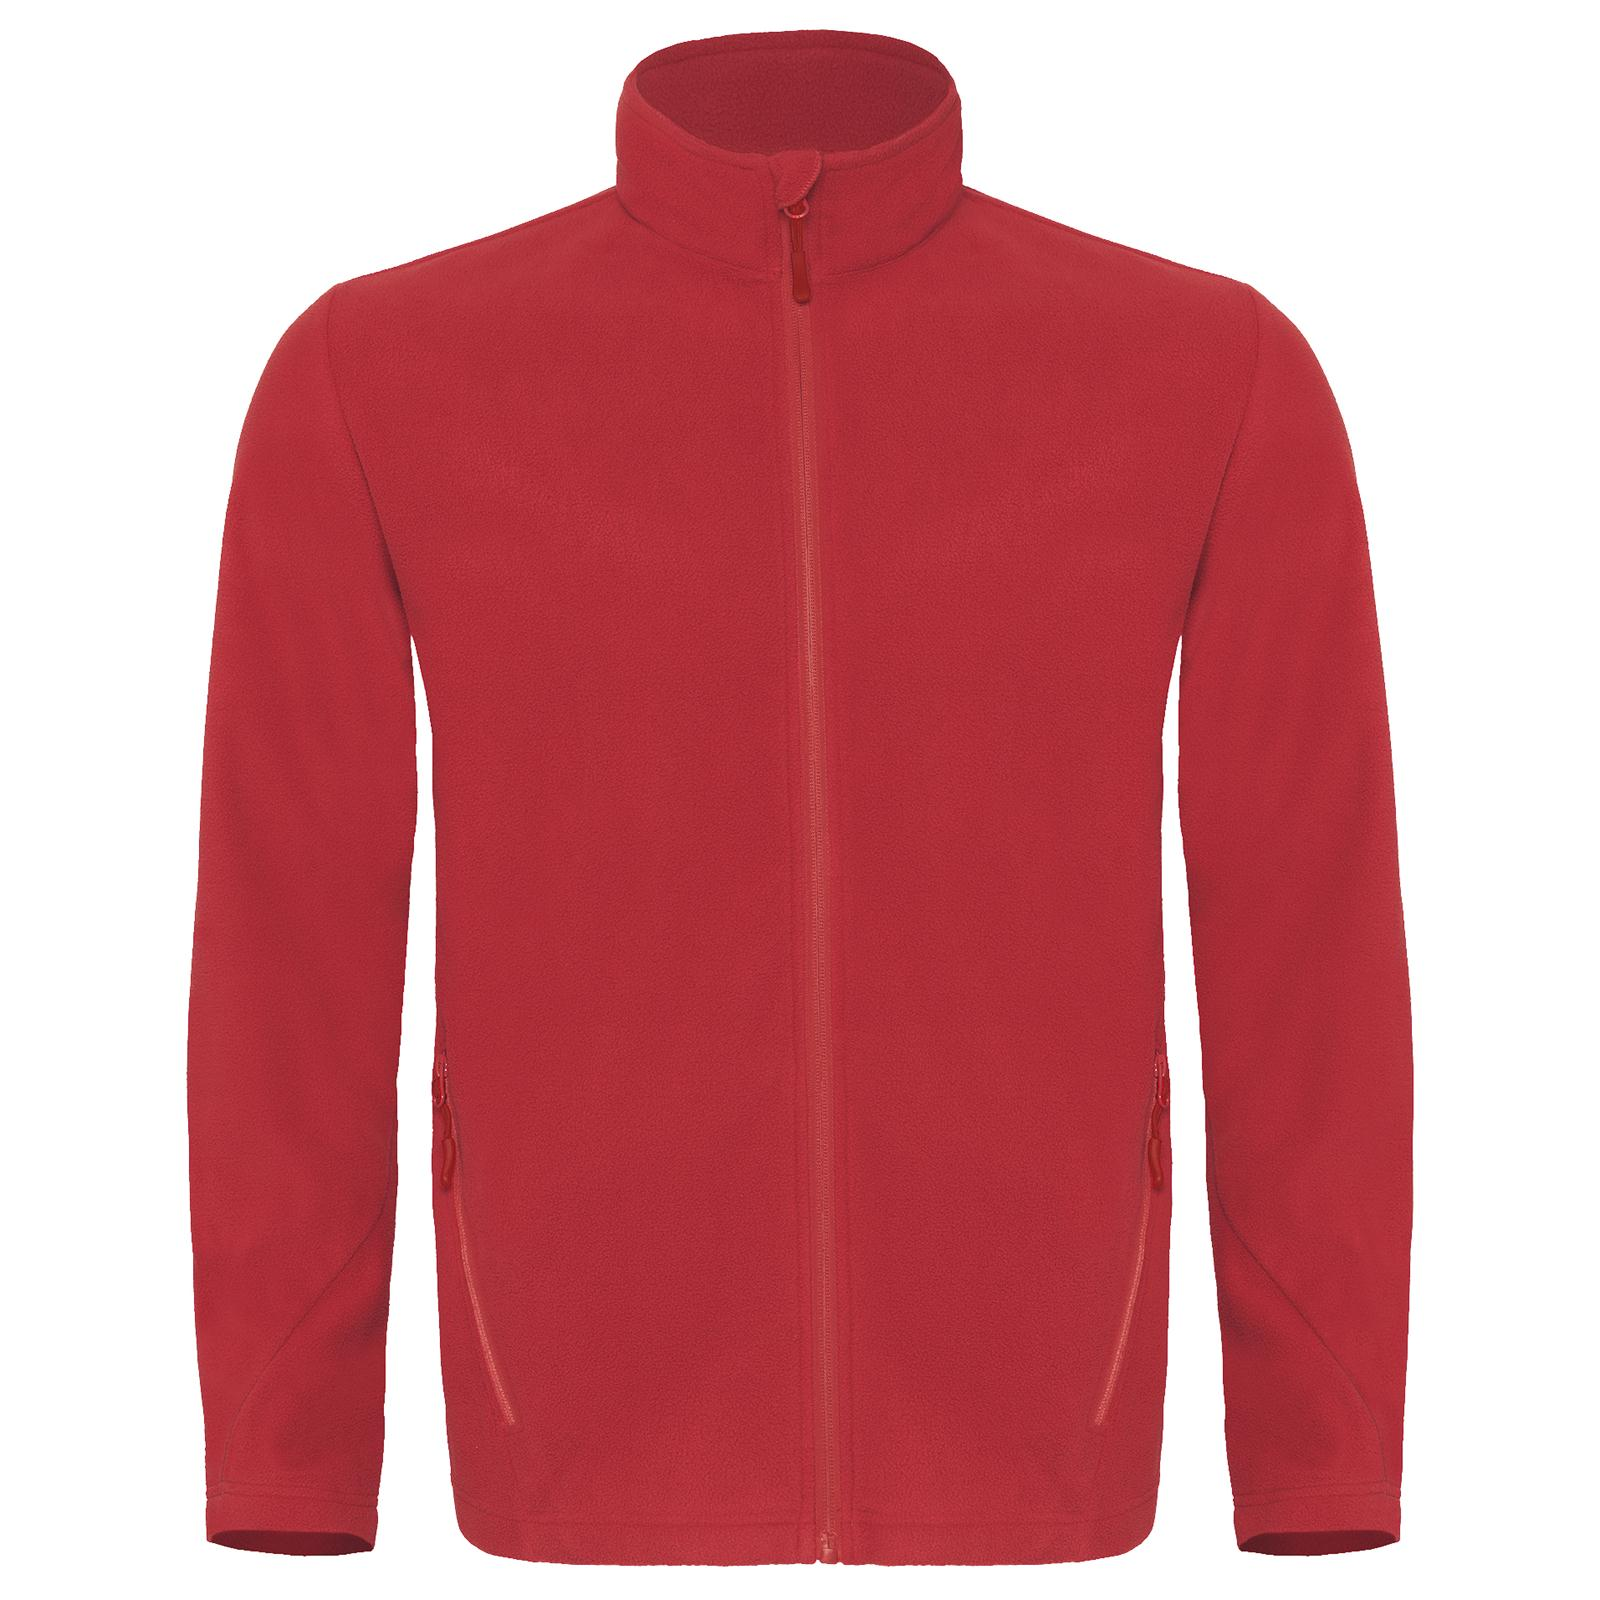 New B&C Mens Coolstar Full Zip Soft Micro Fleece Jacket in 4 ...